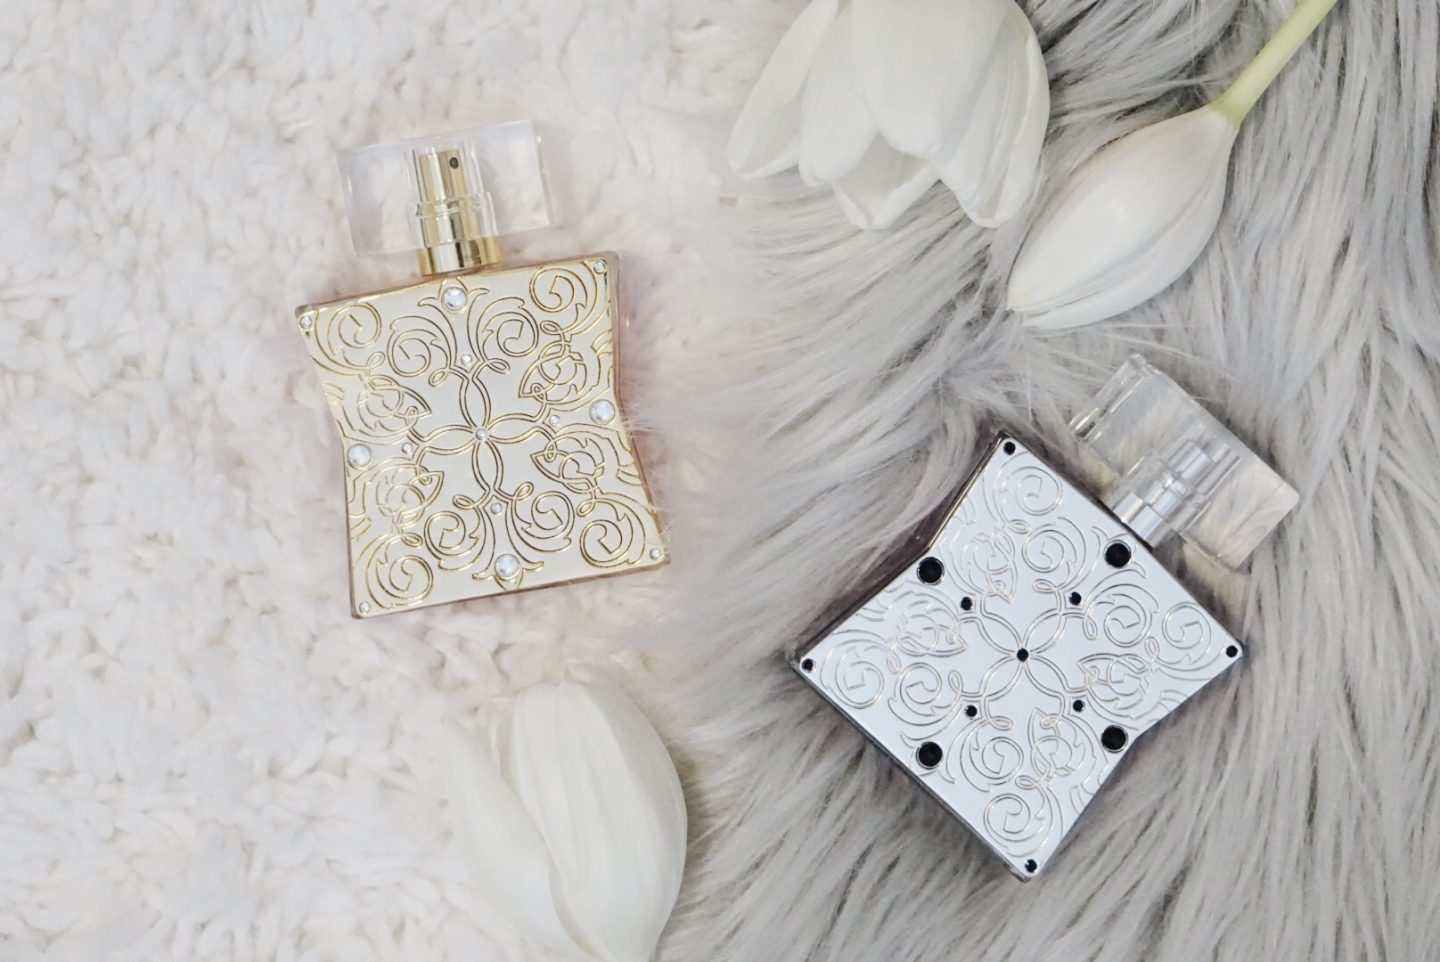 Lace and Lace Noir Perfumes